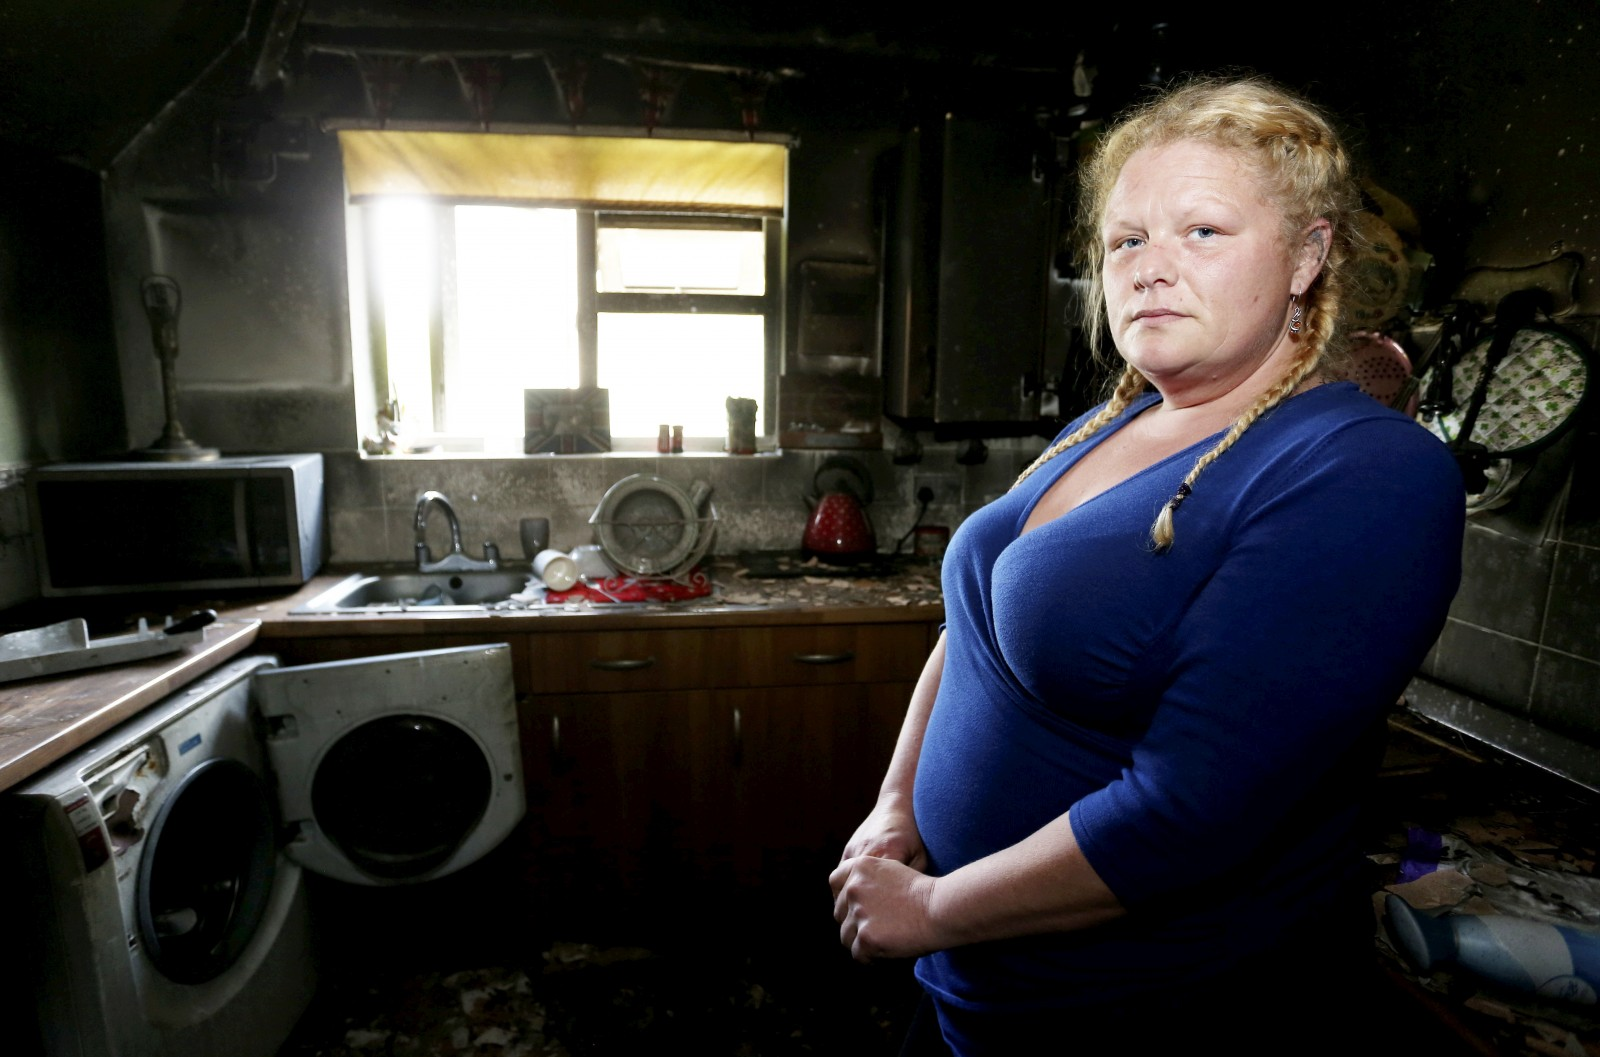 Creda Tumble Dryer Recall >> Tumble dryer sparks blaze gutting flat after it emerges manufacturers are putting lives at risk ...